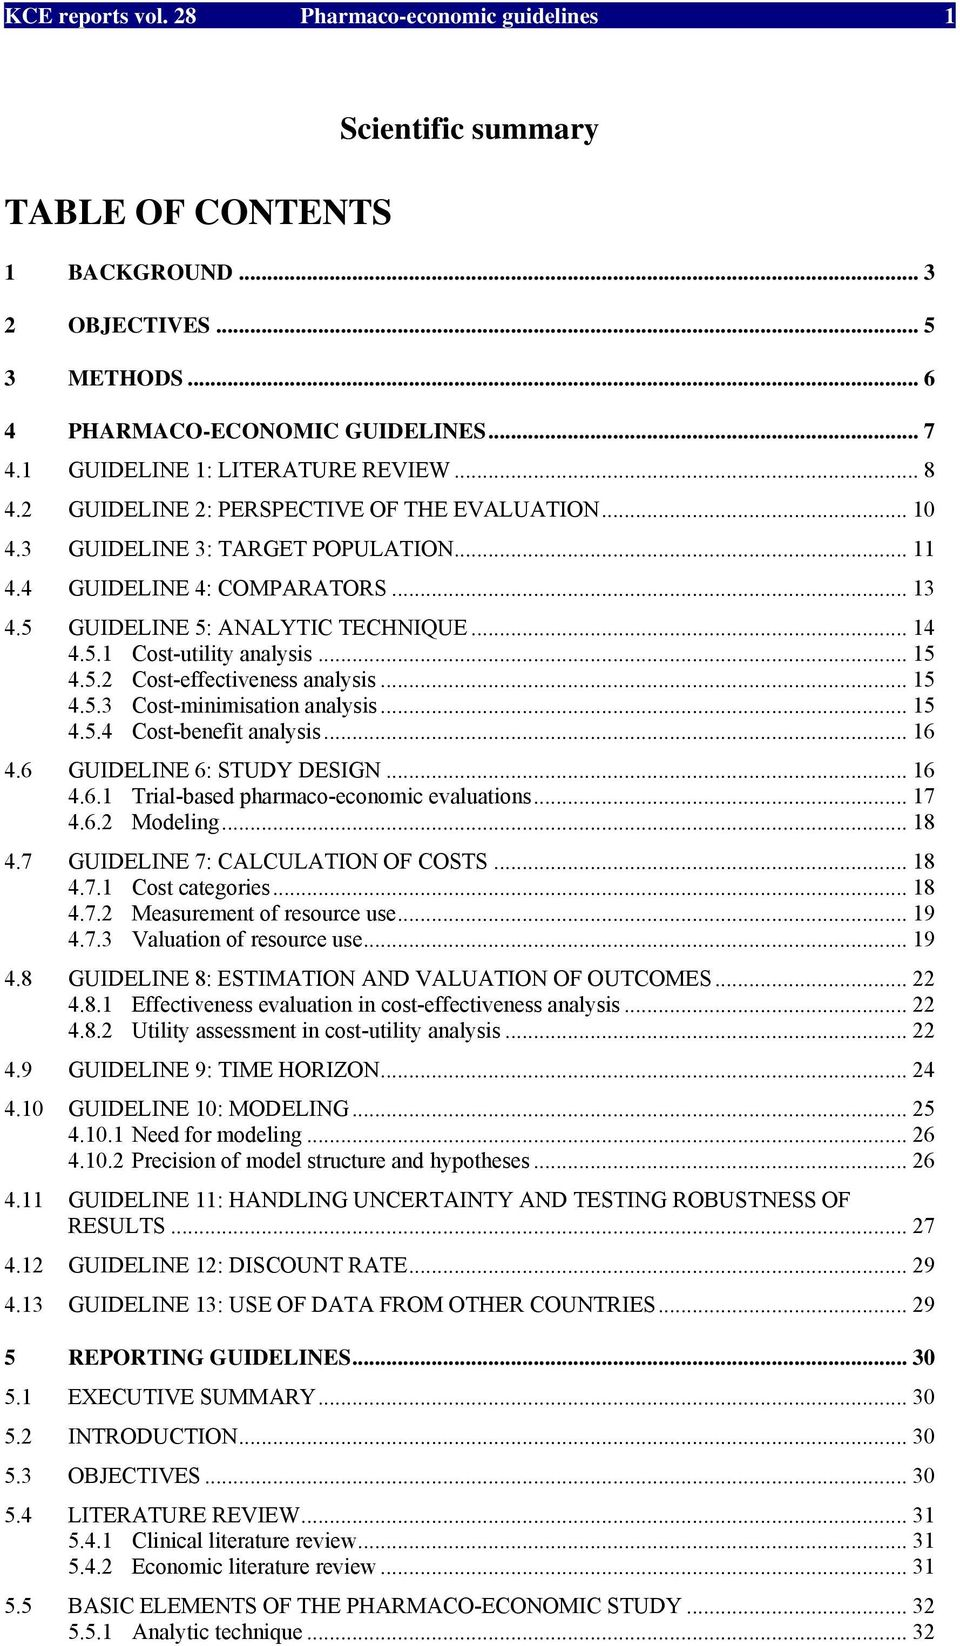 5 GUIDELINE 5: ANALYTIC TECHNIQUE... 14 4.5.1 Cost-utility analysis... 15 4.5.2 Cost-effectiveness analysis... 15 4.5.3 Cost-minimisation analysis... 15 4.5.4 Cost-benefit analysis... 16 4.